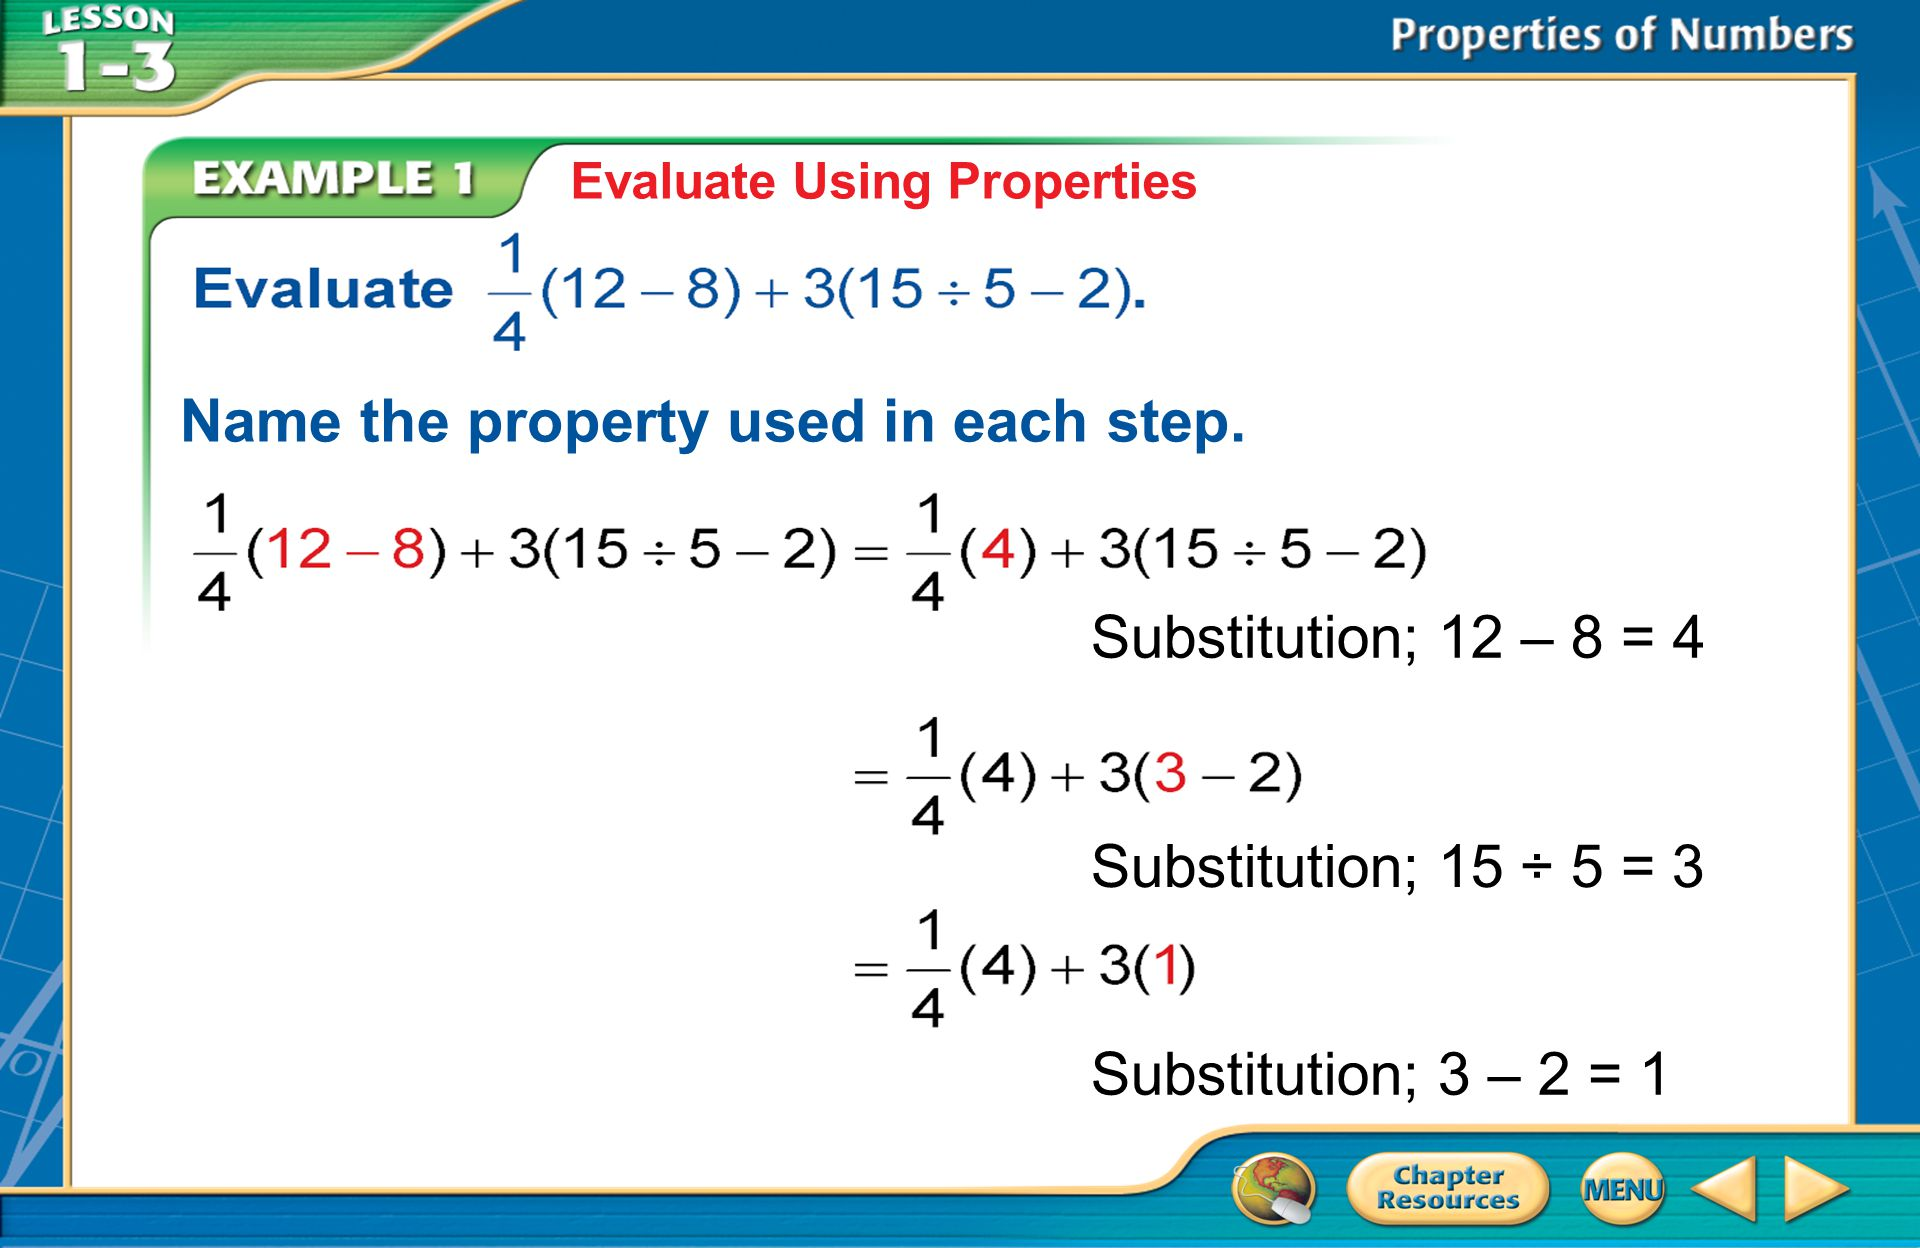 Example 1 Multiplicative Identity; 3 ● 1 = 3 = 4Substitution; 1 + 3 = 4 Multiplicative Inverse; ● 4 = 1 Answer: 4 Evaluate Using Properties